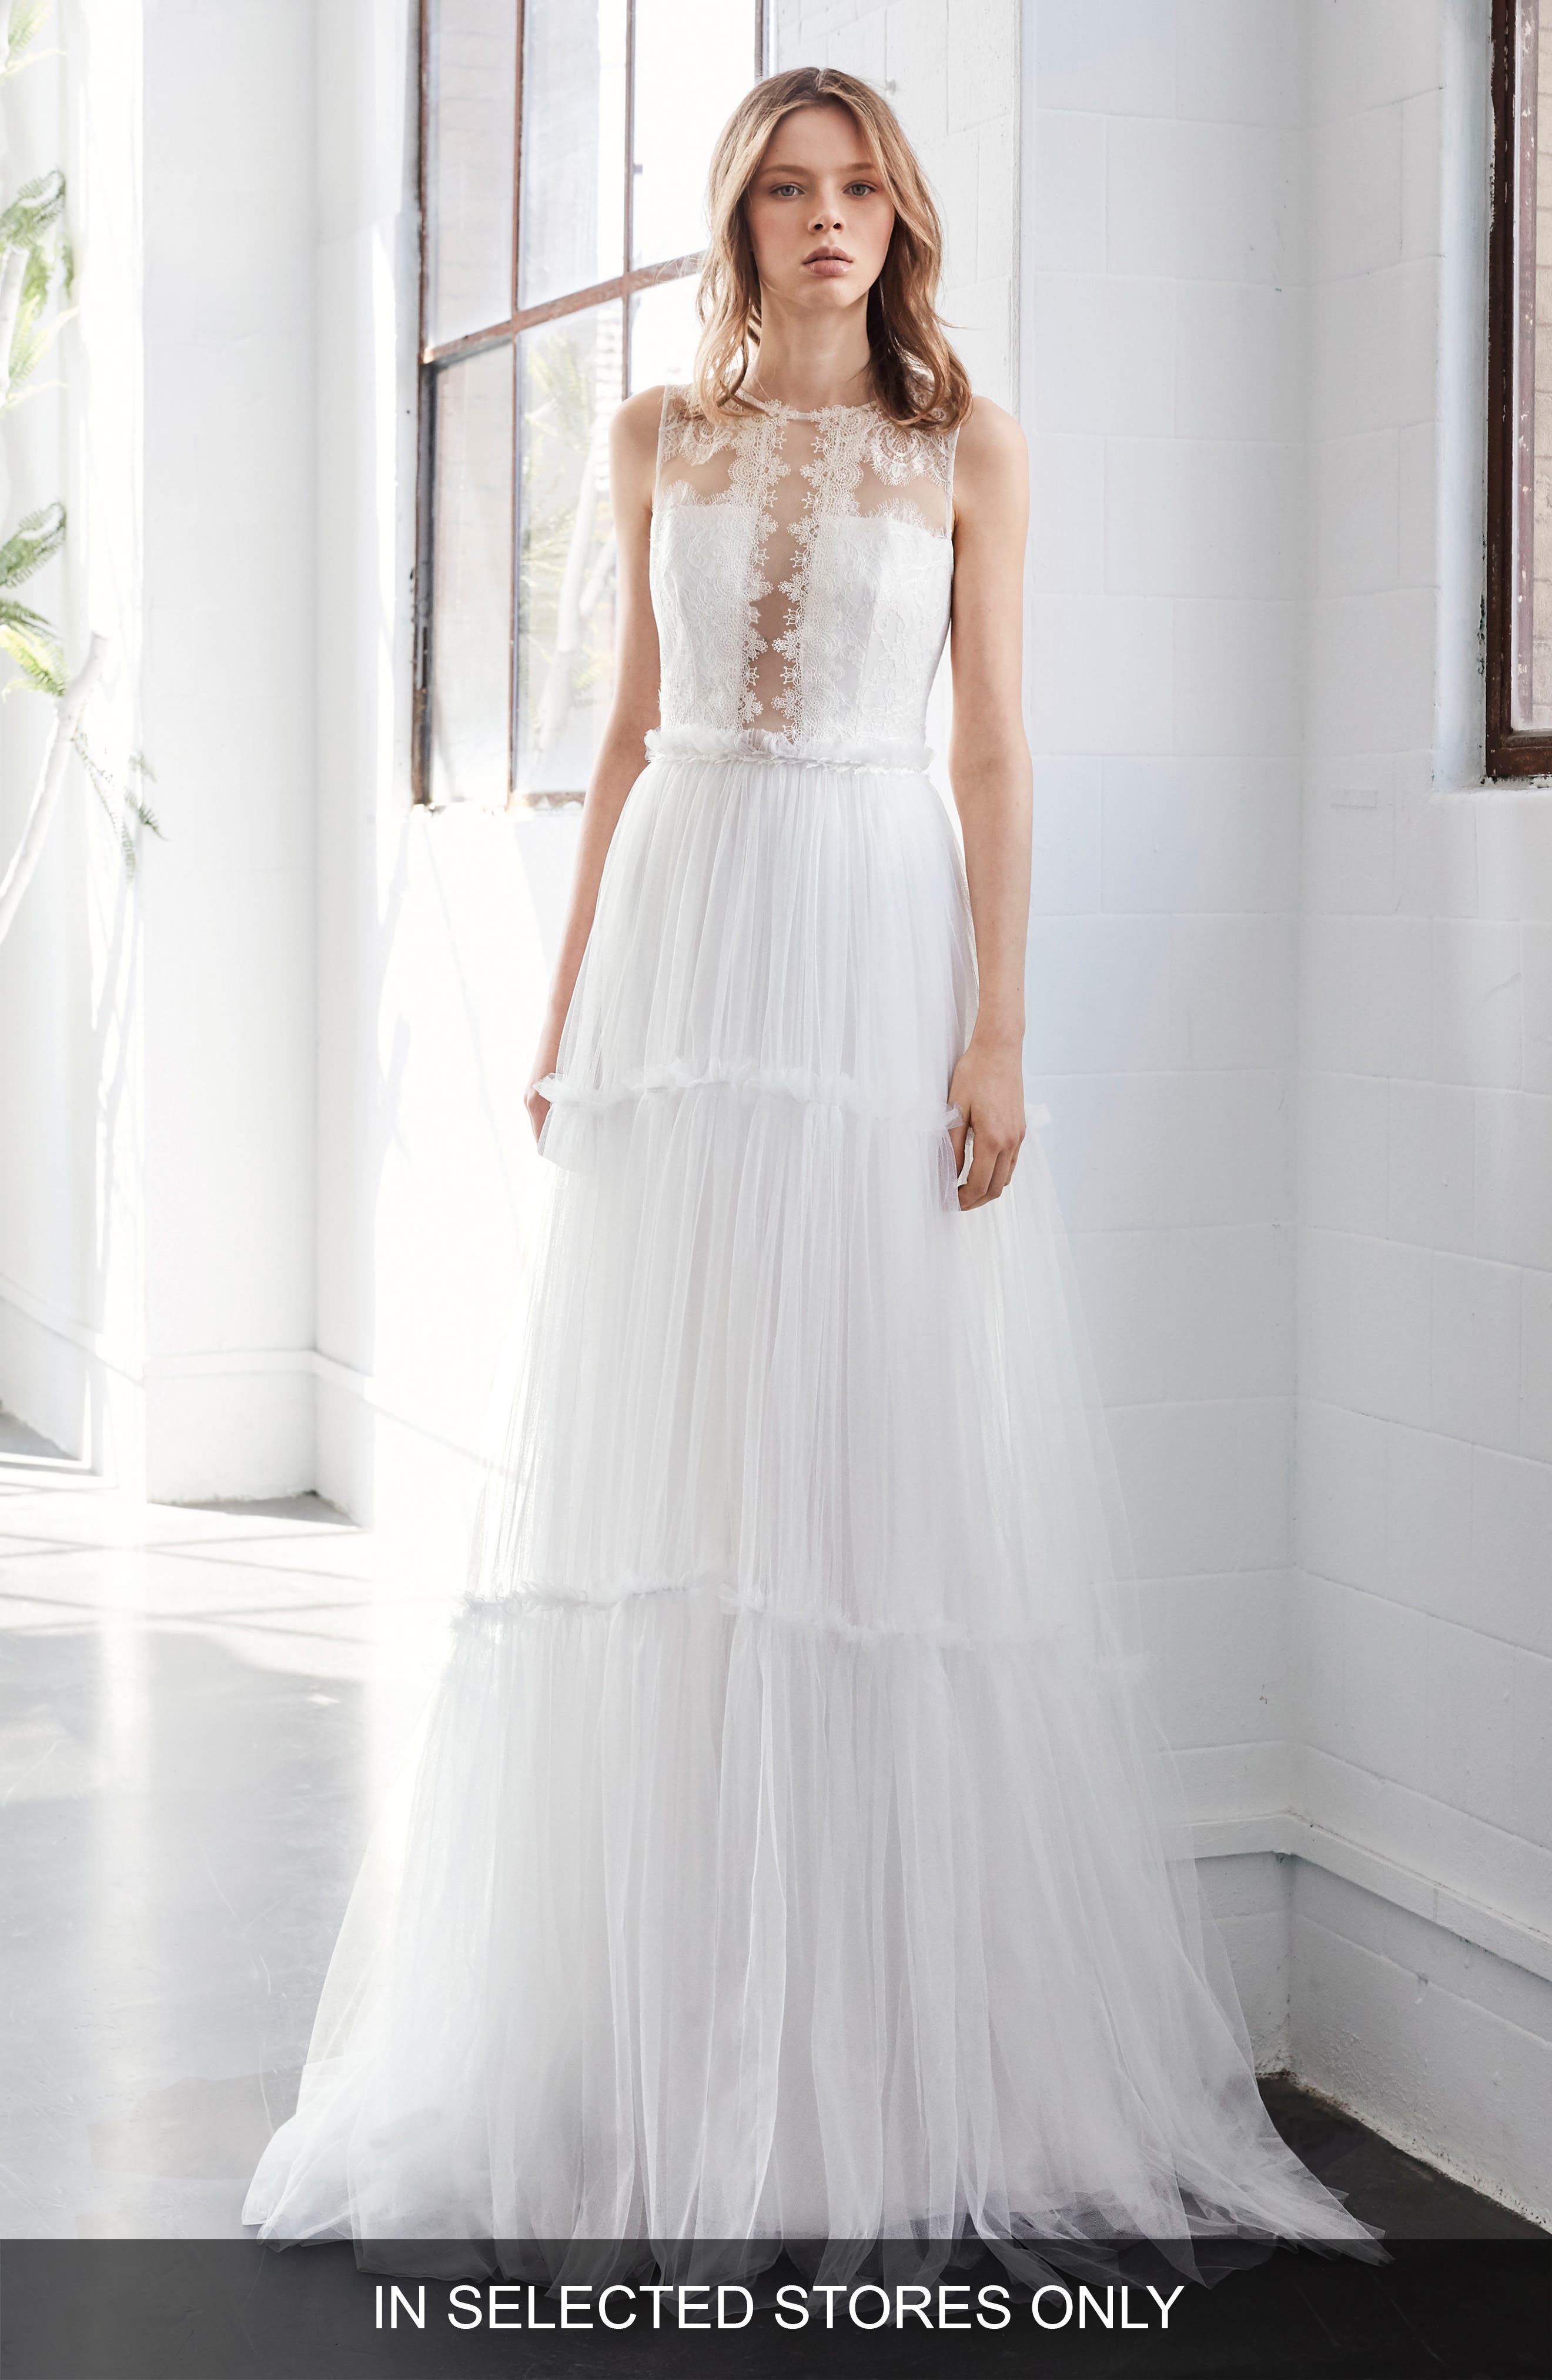 Inmaculada García Jaspe Lace & Tulle A-Line Gown,                             Main thumbnail 1, color,                             IVORY